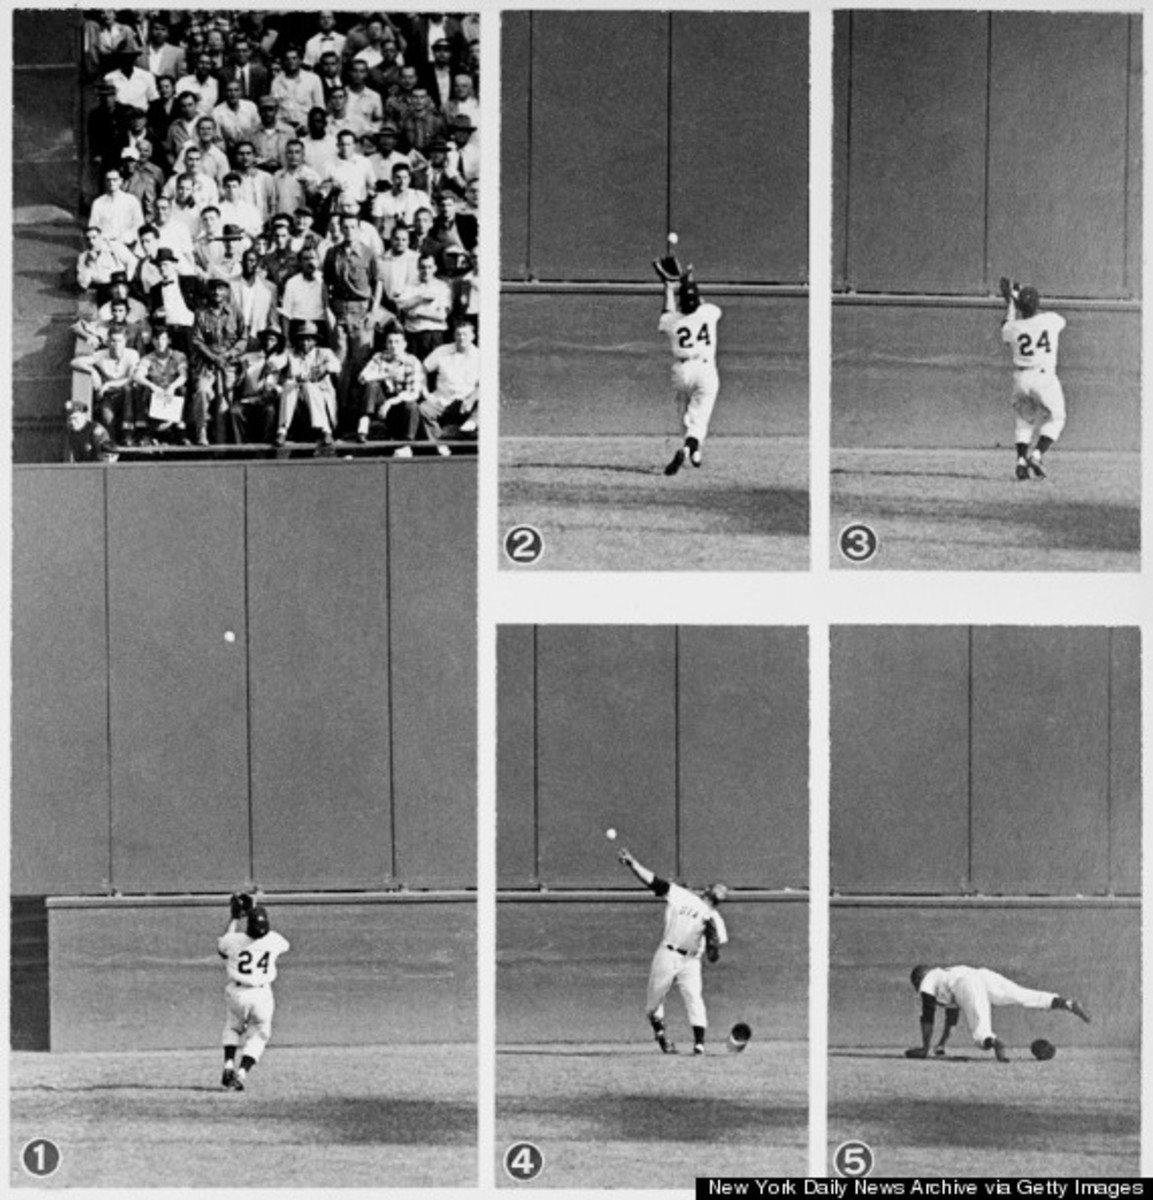 The Catch in sequence. But don't forget the throw! In one motion; catch, turn, throw, and twirl.